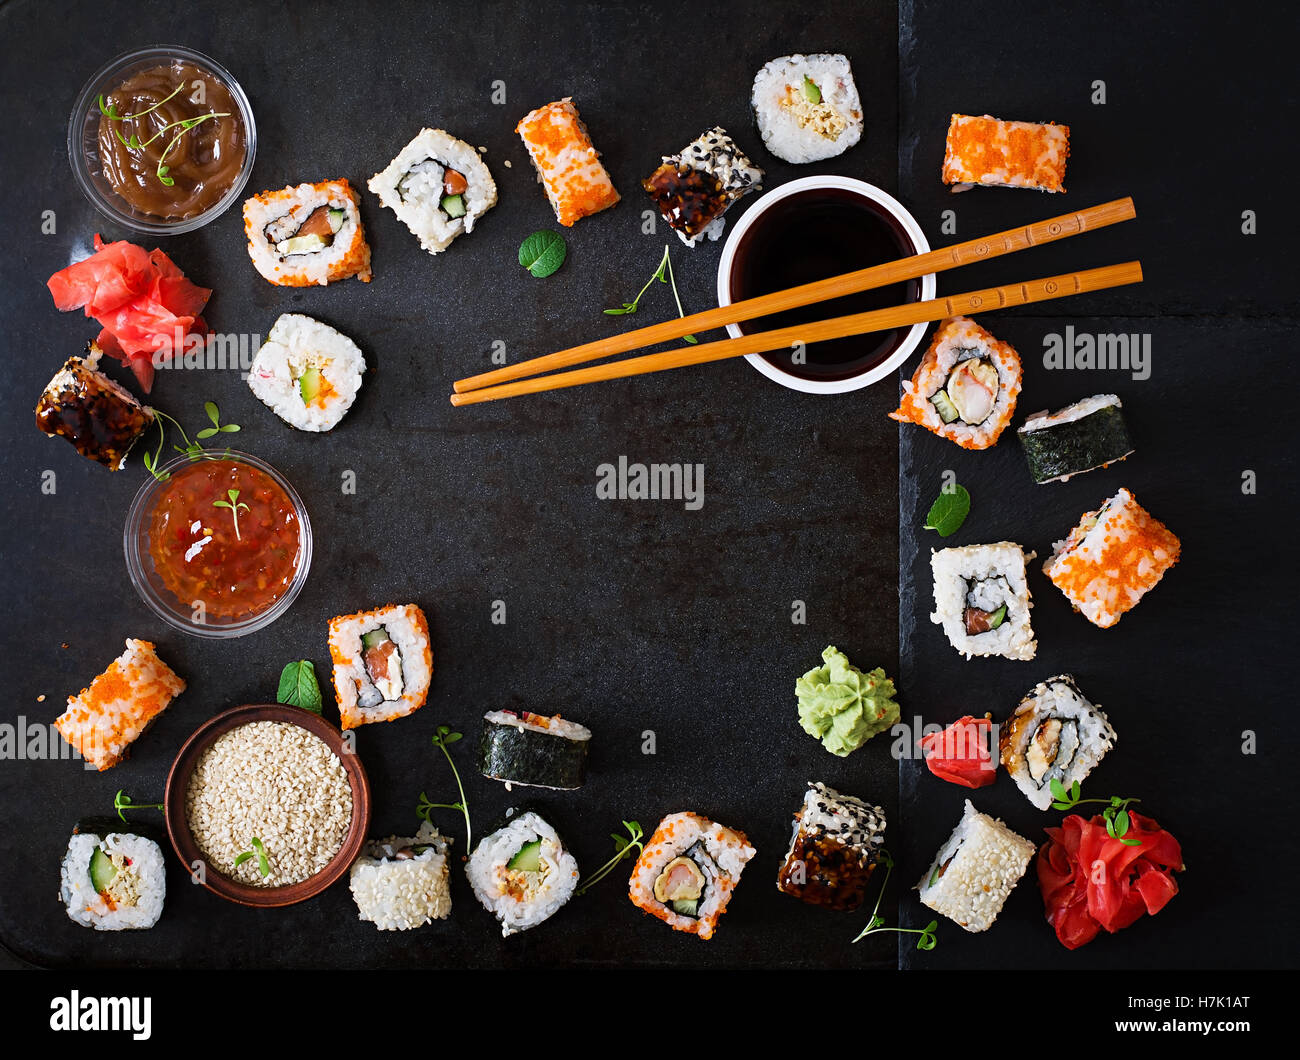 Traditional Japanese food - sushi, rolls and sauce on a dark background. Top view - Stock Image